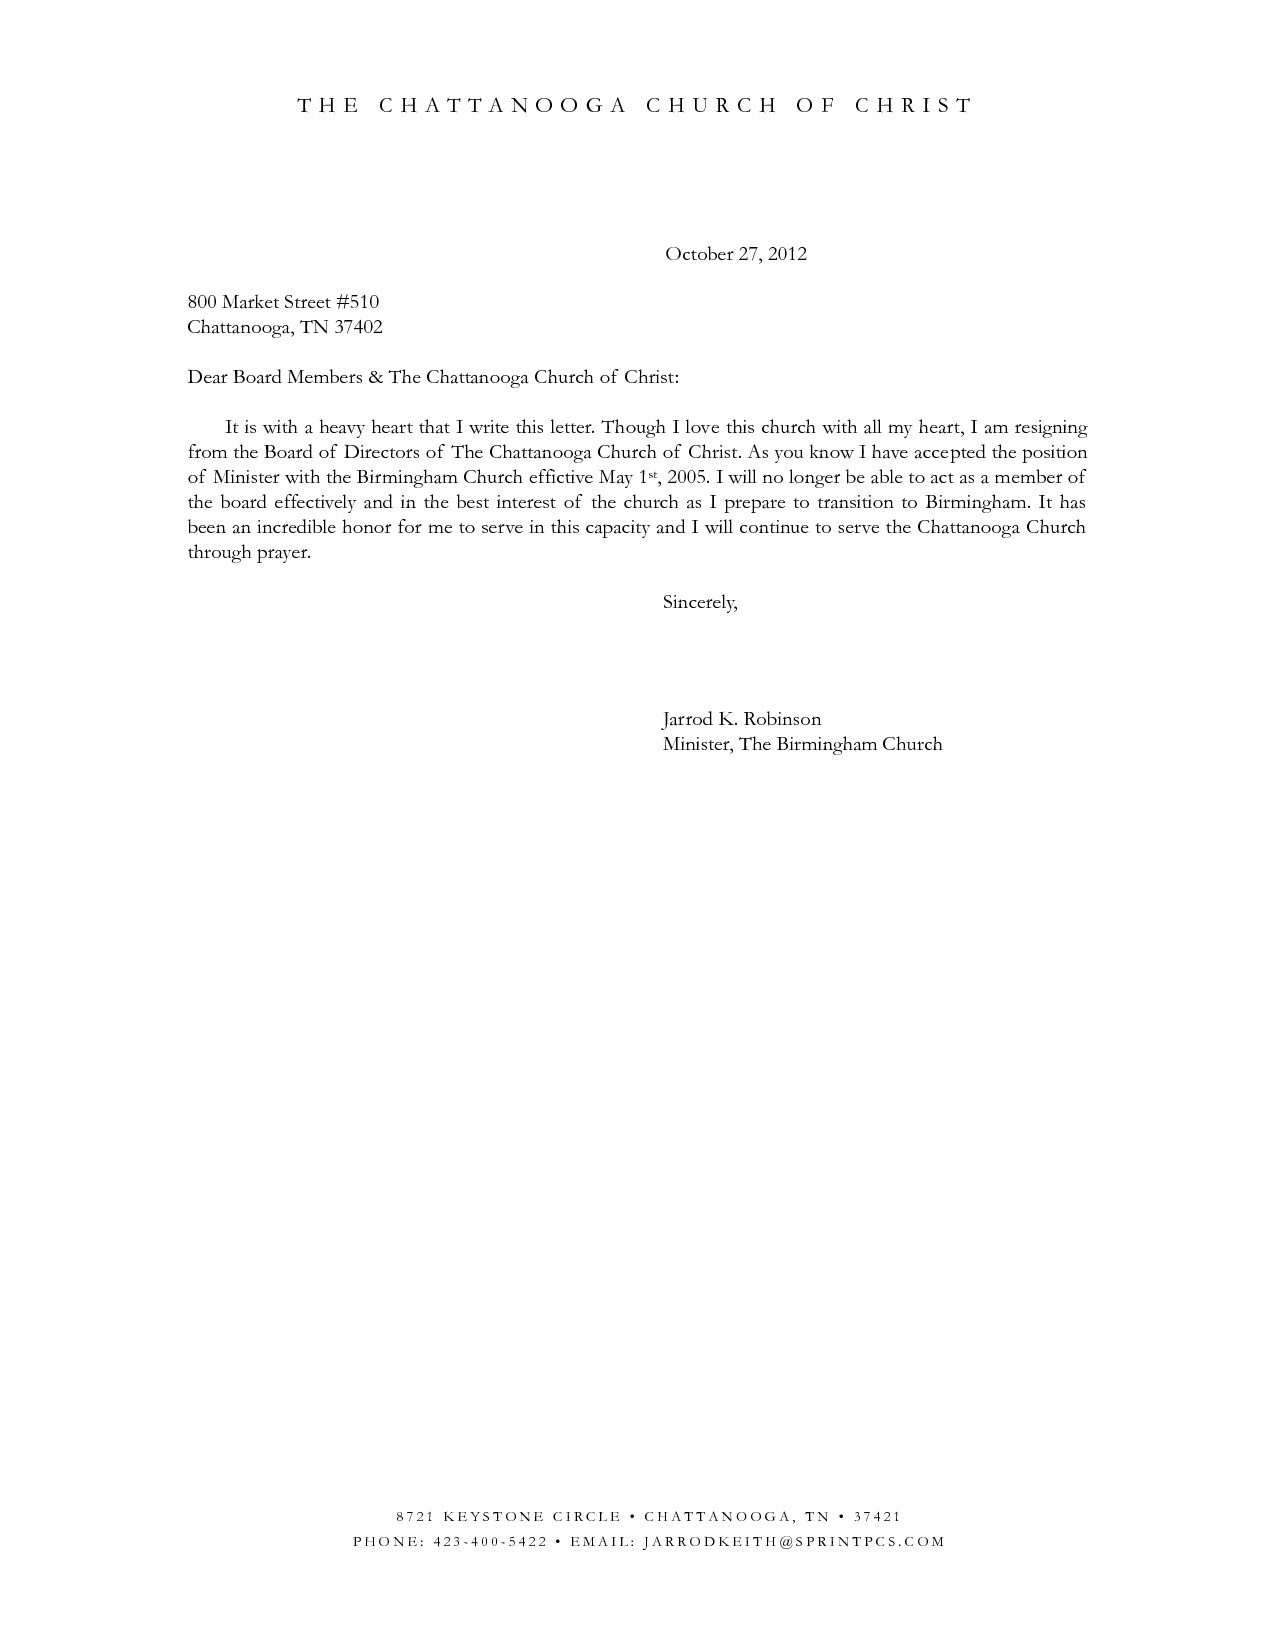 Free Resignation Letter Template Word Samples | Letter Templates